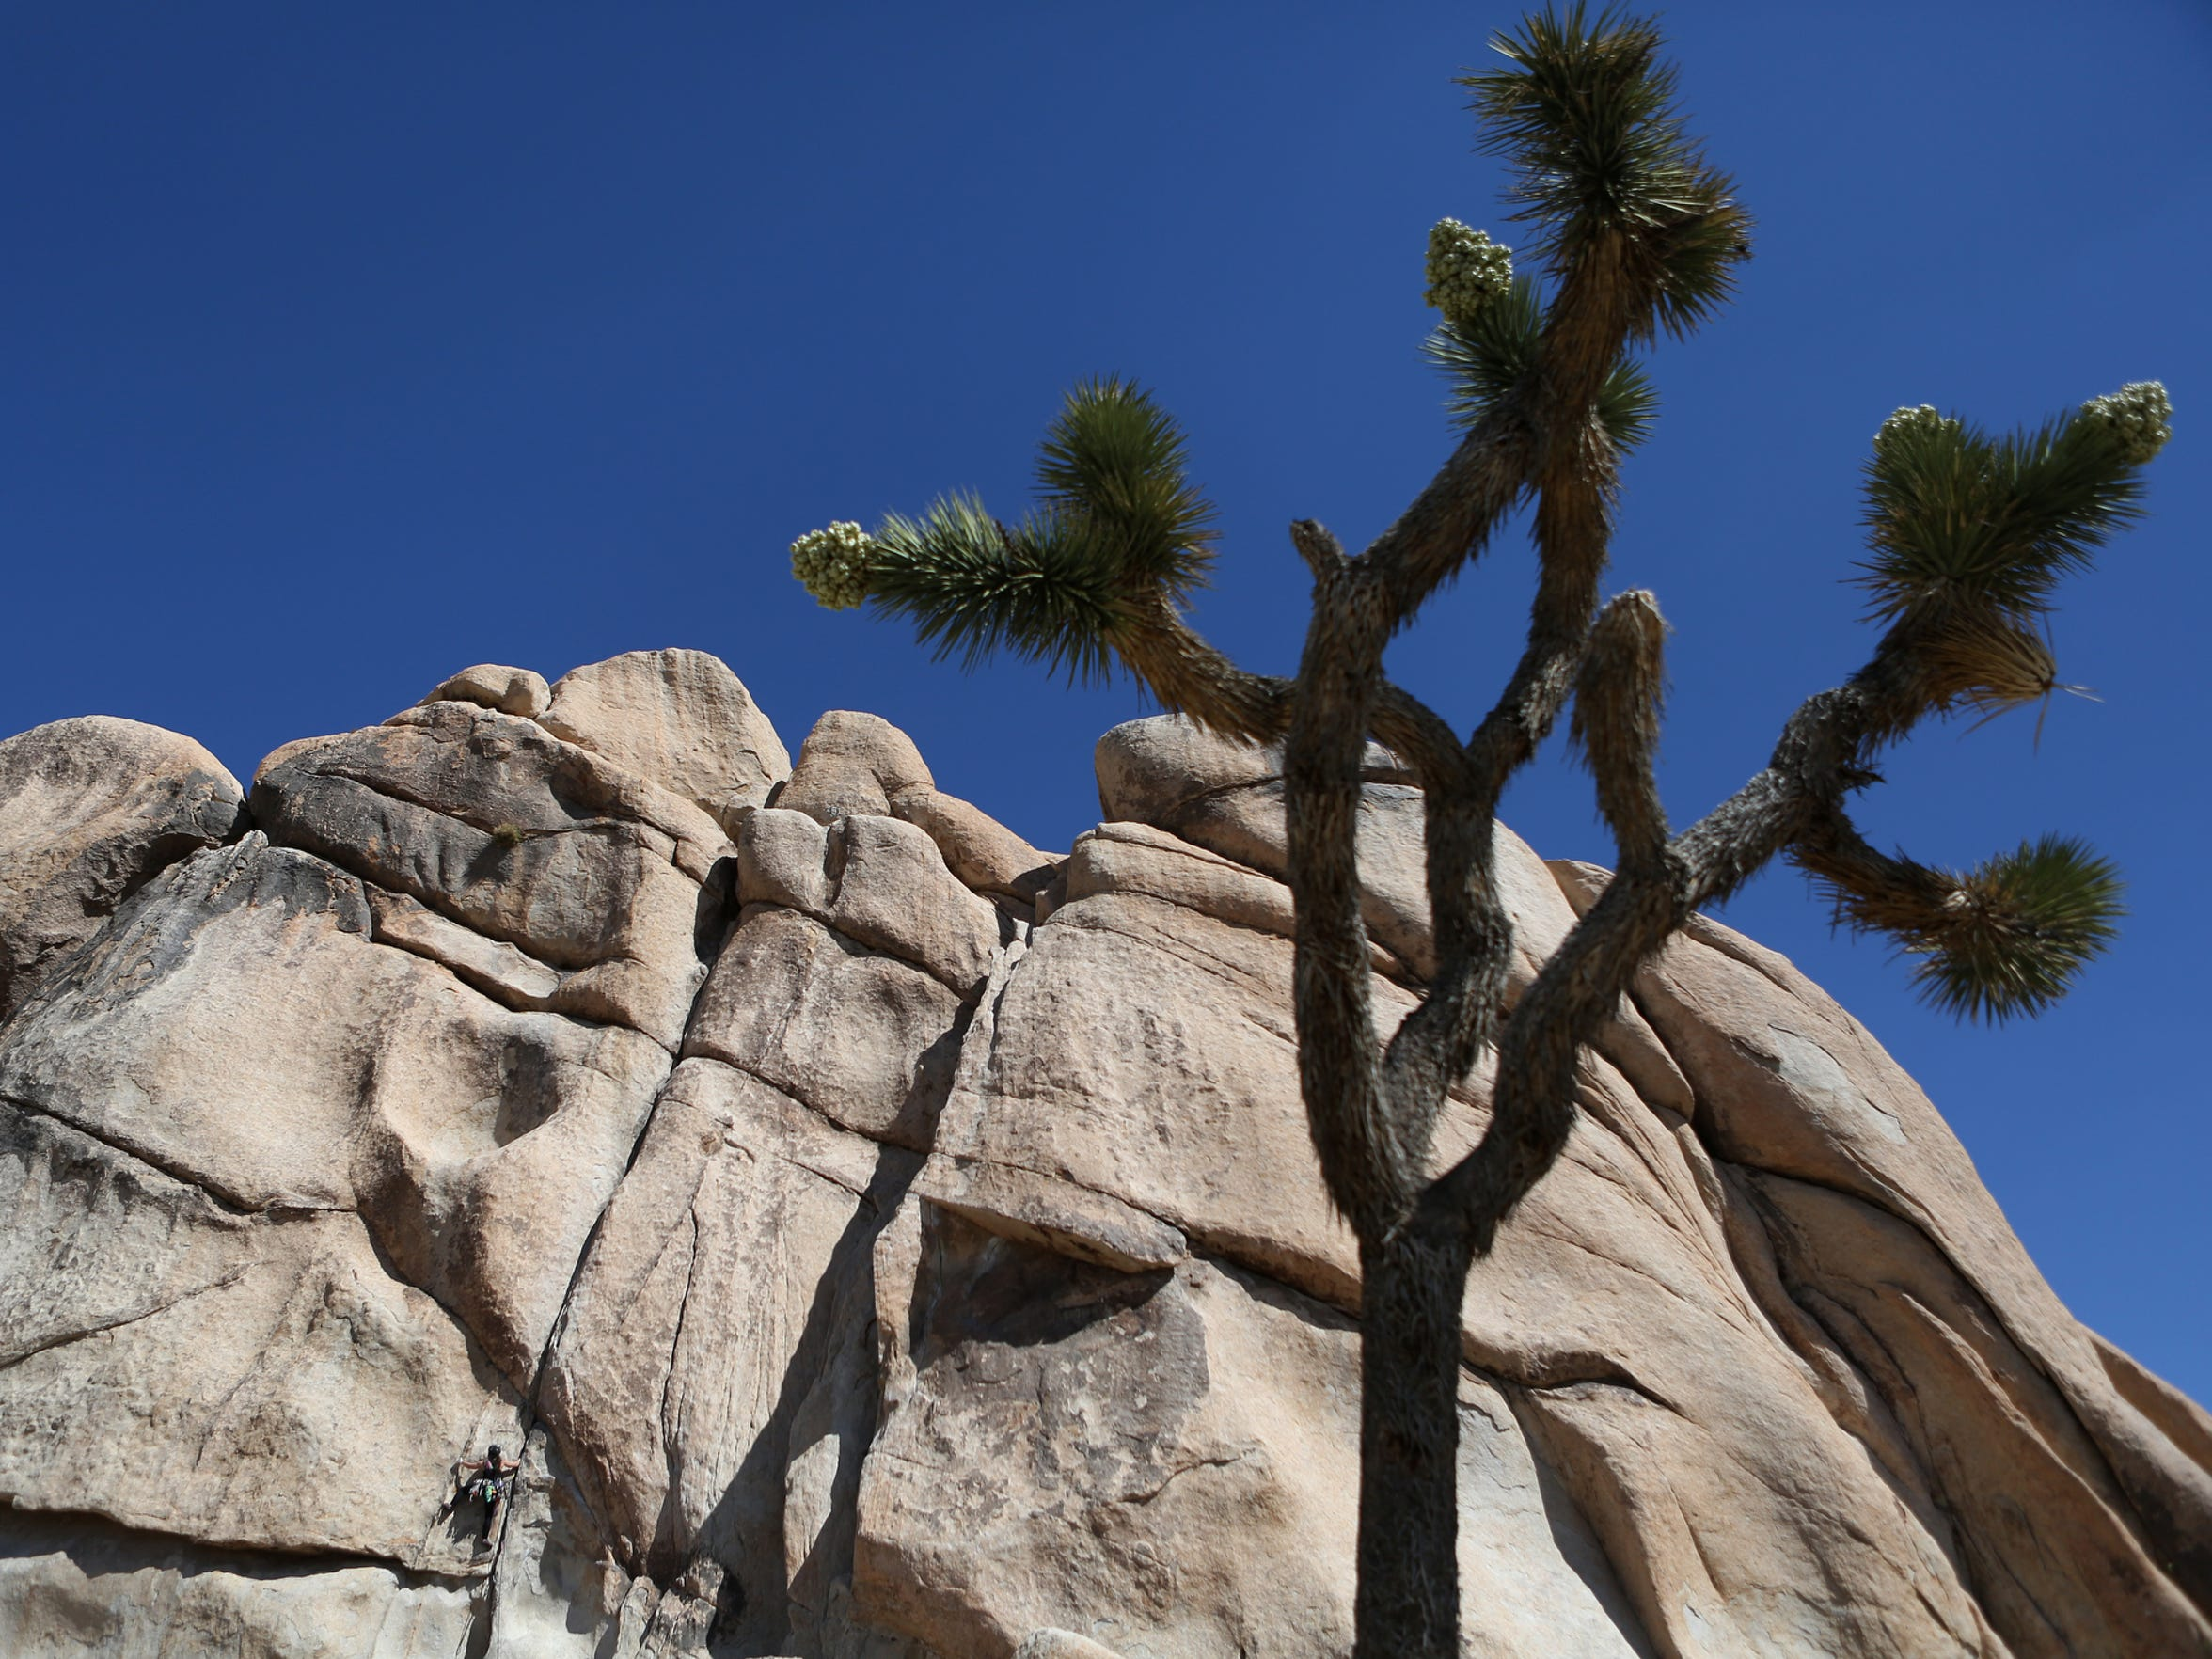 A climber makes her way up a boulder in Hidden Valley on March 18 in Joshua Tree National Park.